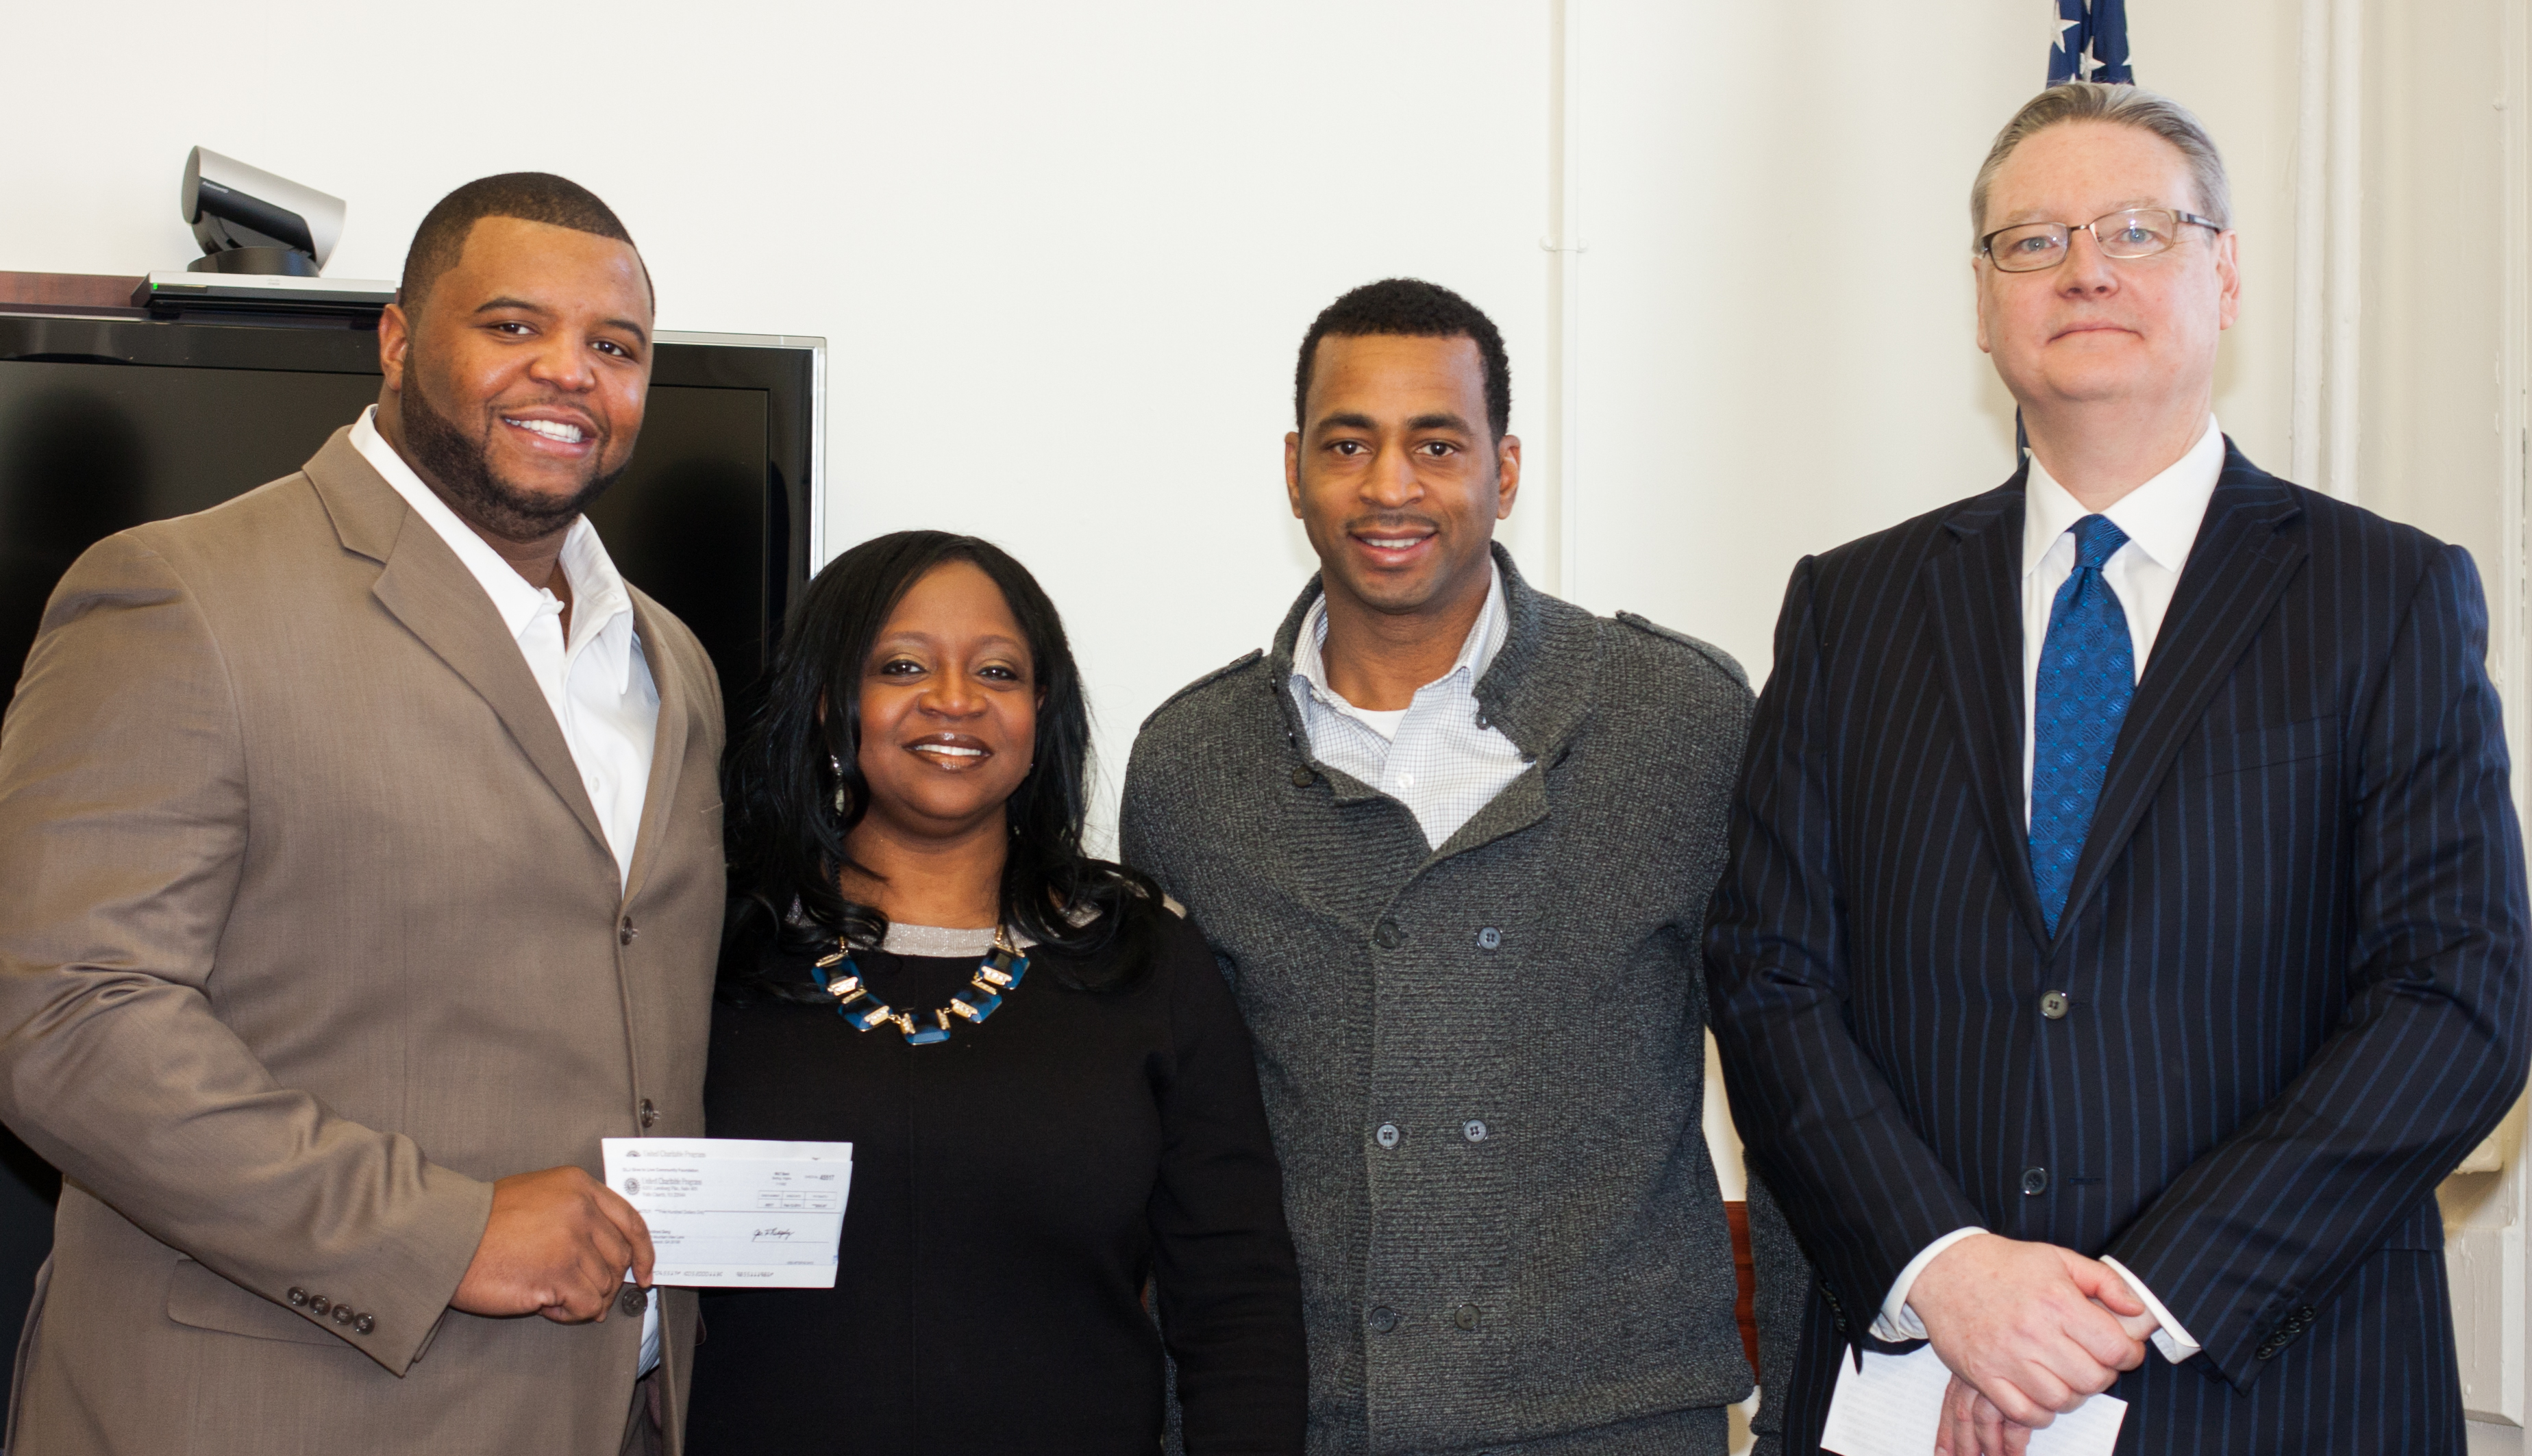 Feb 28 2014 LtoR NFL player Damien Gregory from GridIron Gang, JCFW Founder Desha Jackson, Director Ryan Strouther's from Jersey City Recreation, Kevin Cuskley.jpg